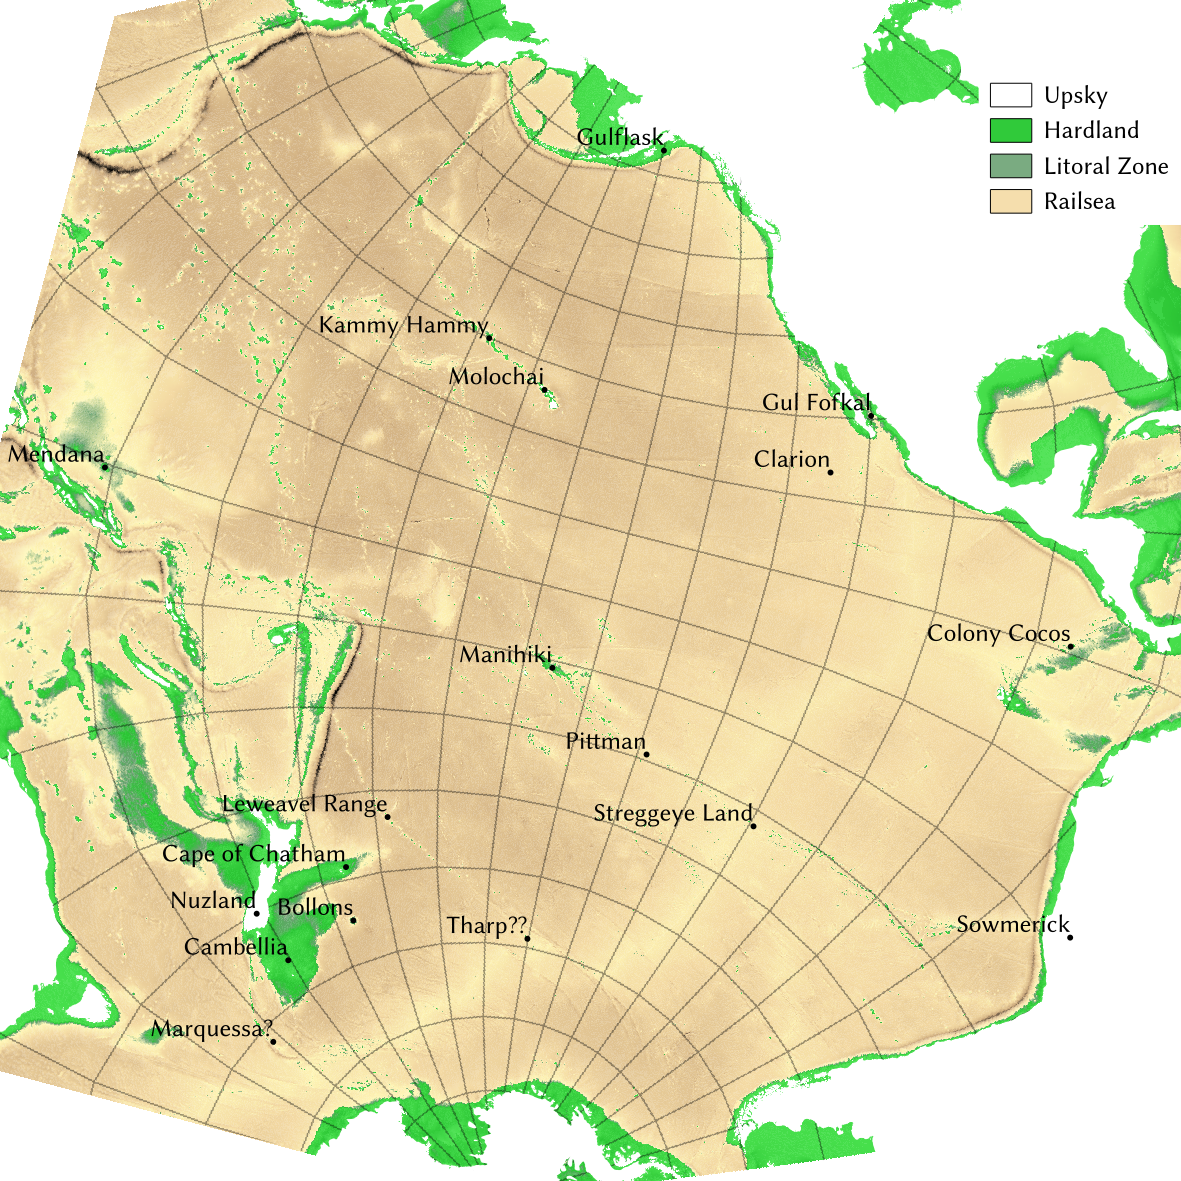 Lake Hermanstadt: A Working Map of the Railsea on